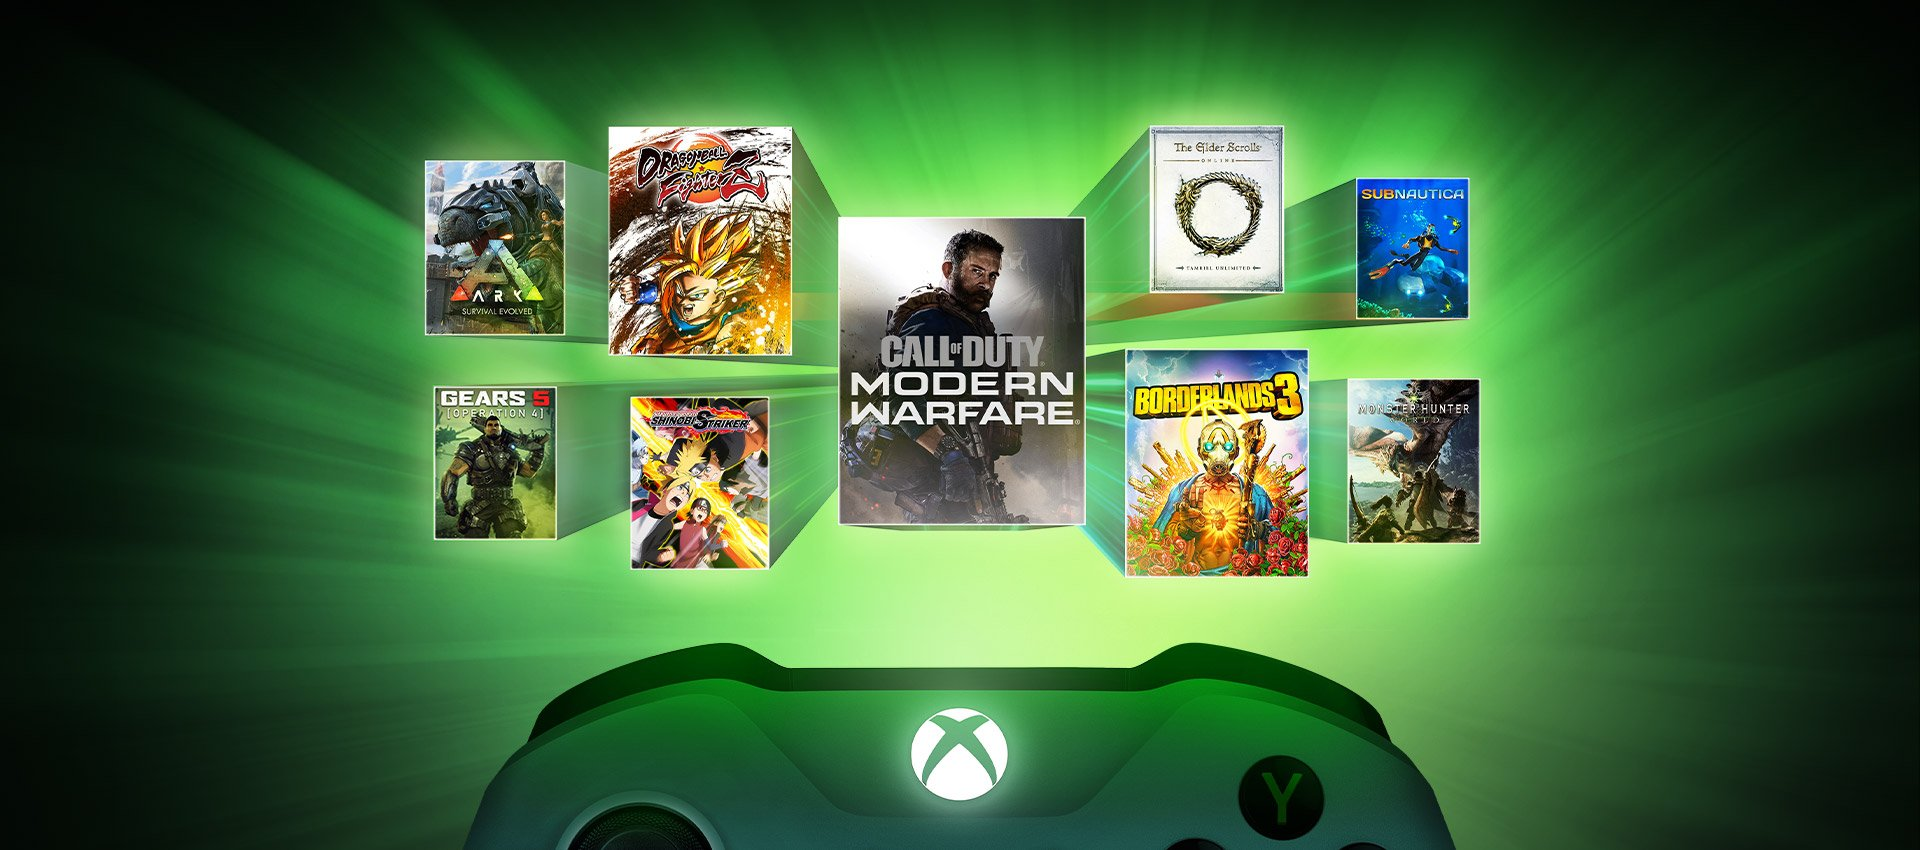 Online Multiplayer Is Free On Xbox One This Weekend With Free Games To Boot Allgamers